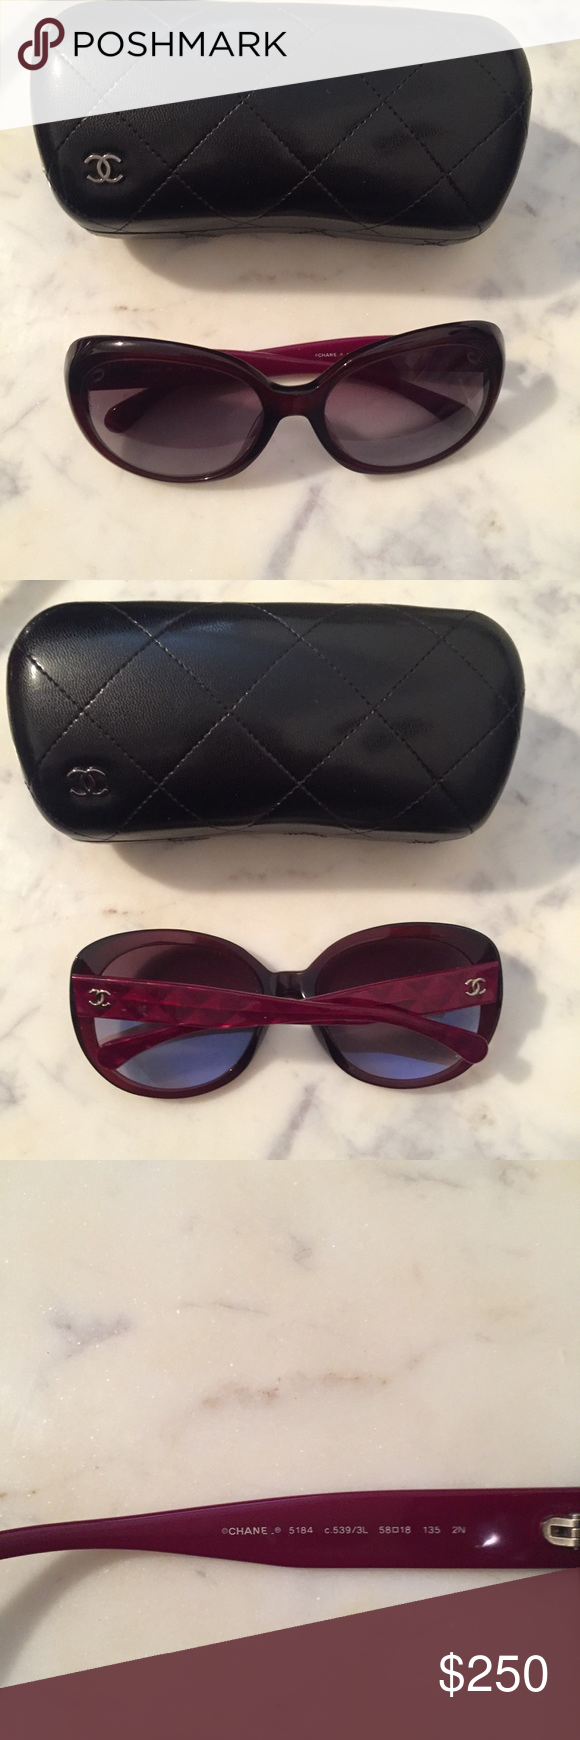 c5bac54e1872 Chanel Oval Signature Sunglasses in Deep Red Dark red frames. Standard fit.  Previously used. Quilted case with cc logo. 100% UVA and UVB protection CE.